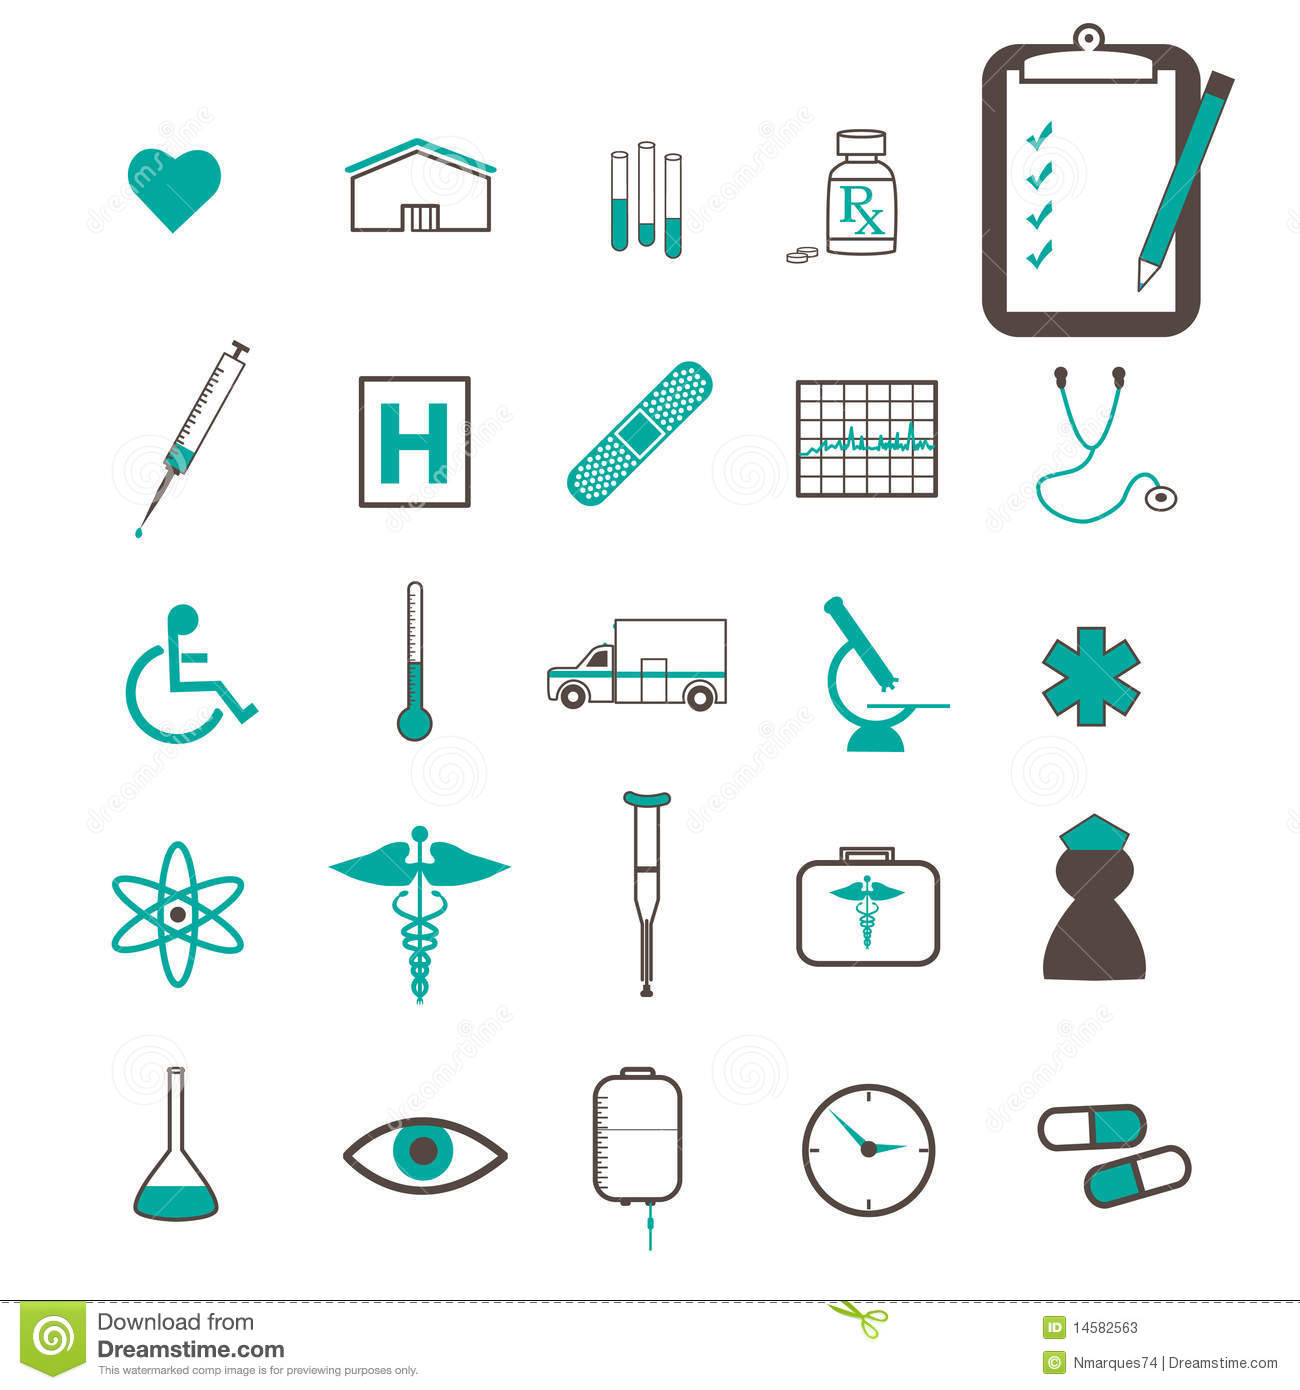 medical-icon-set-14582563.jpg